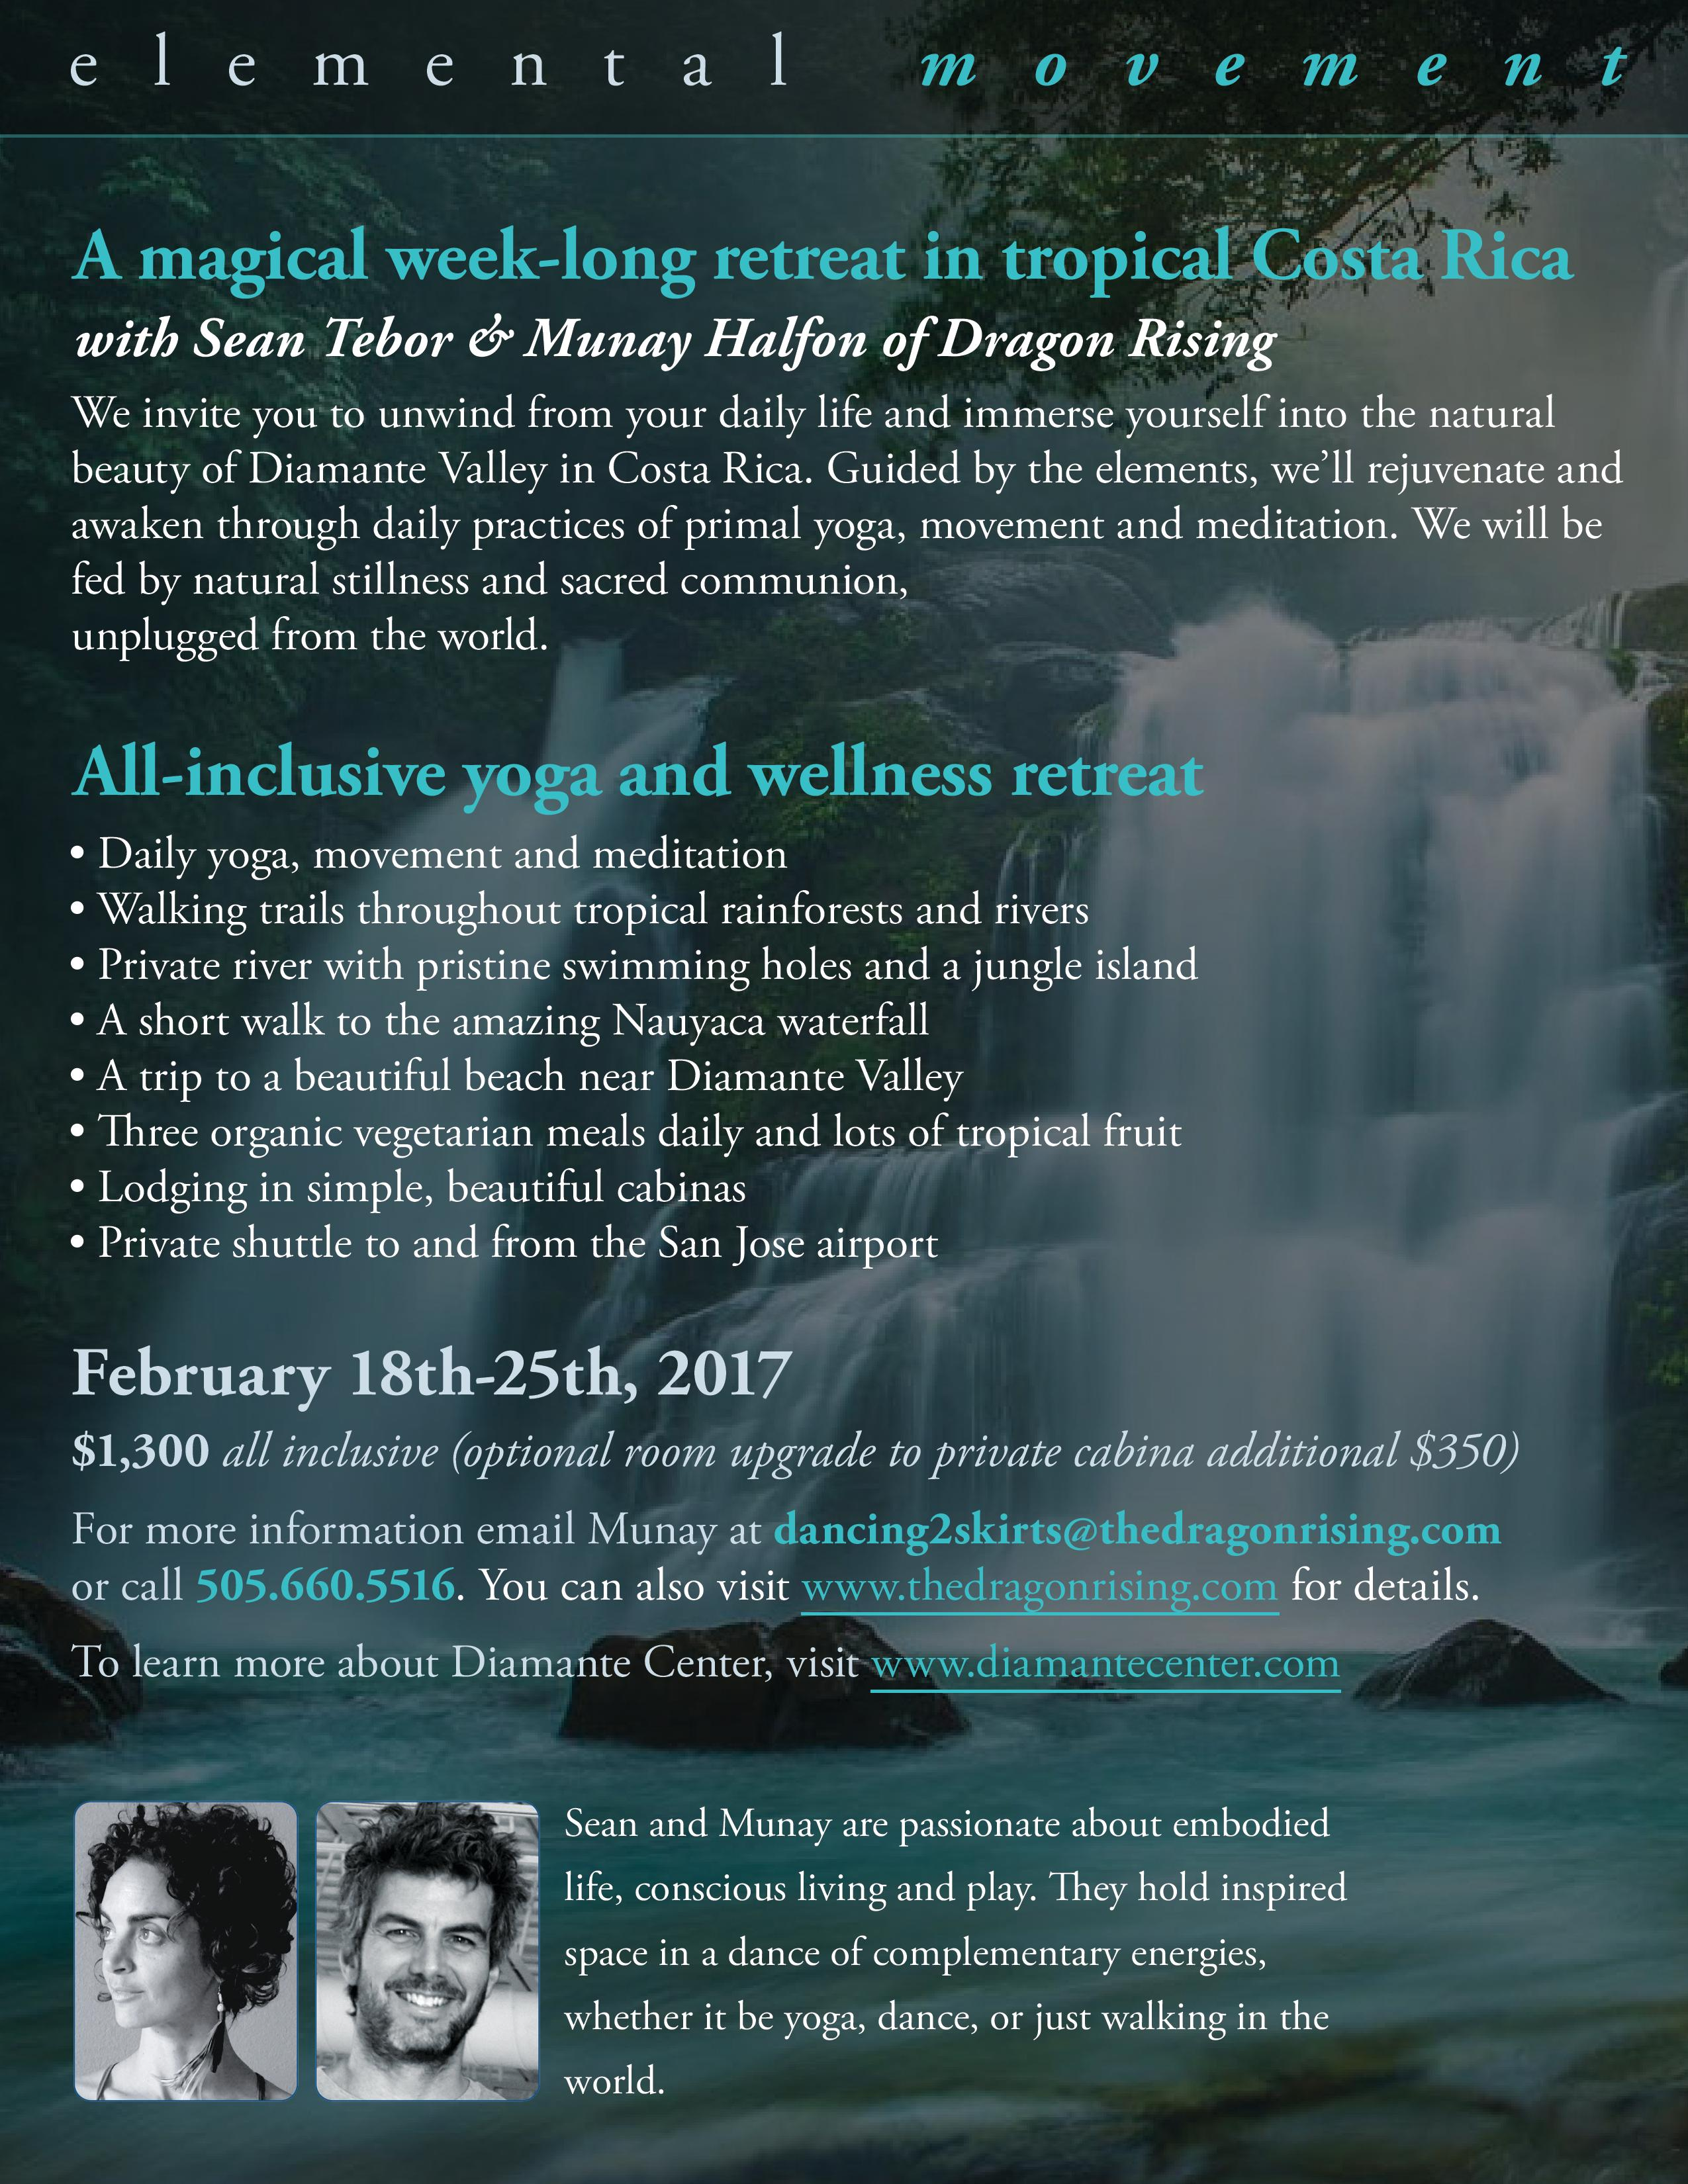 Elemental Movement - FULL - Diamante Center Retreat